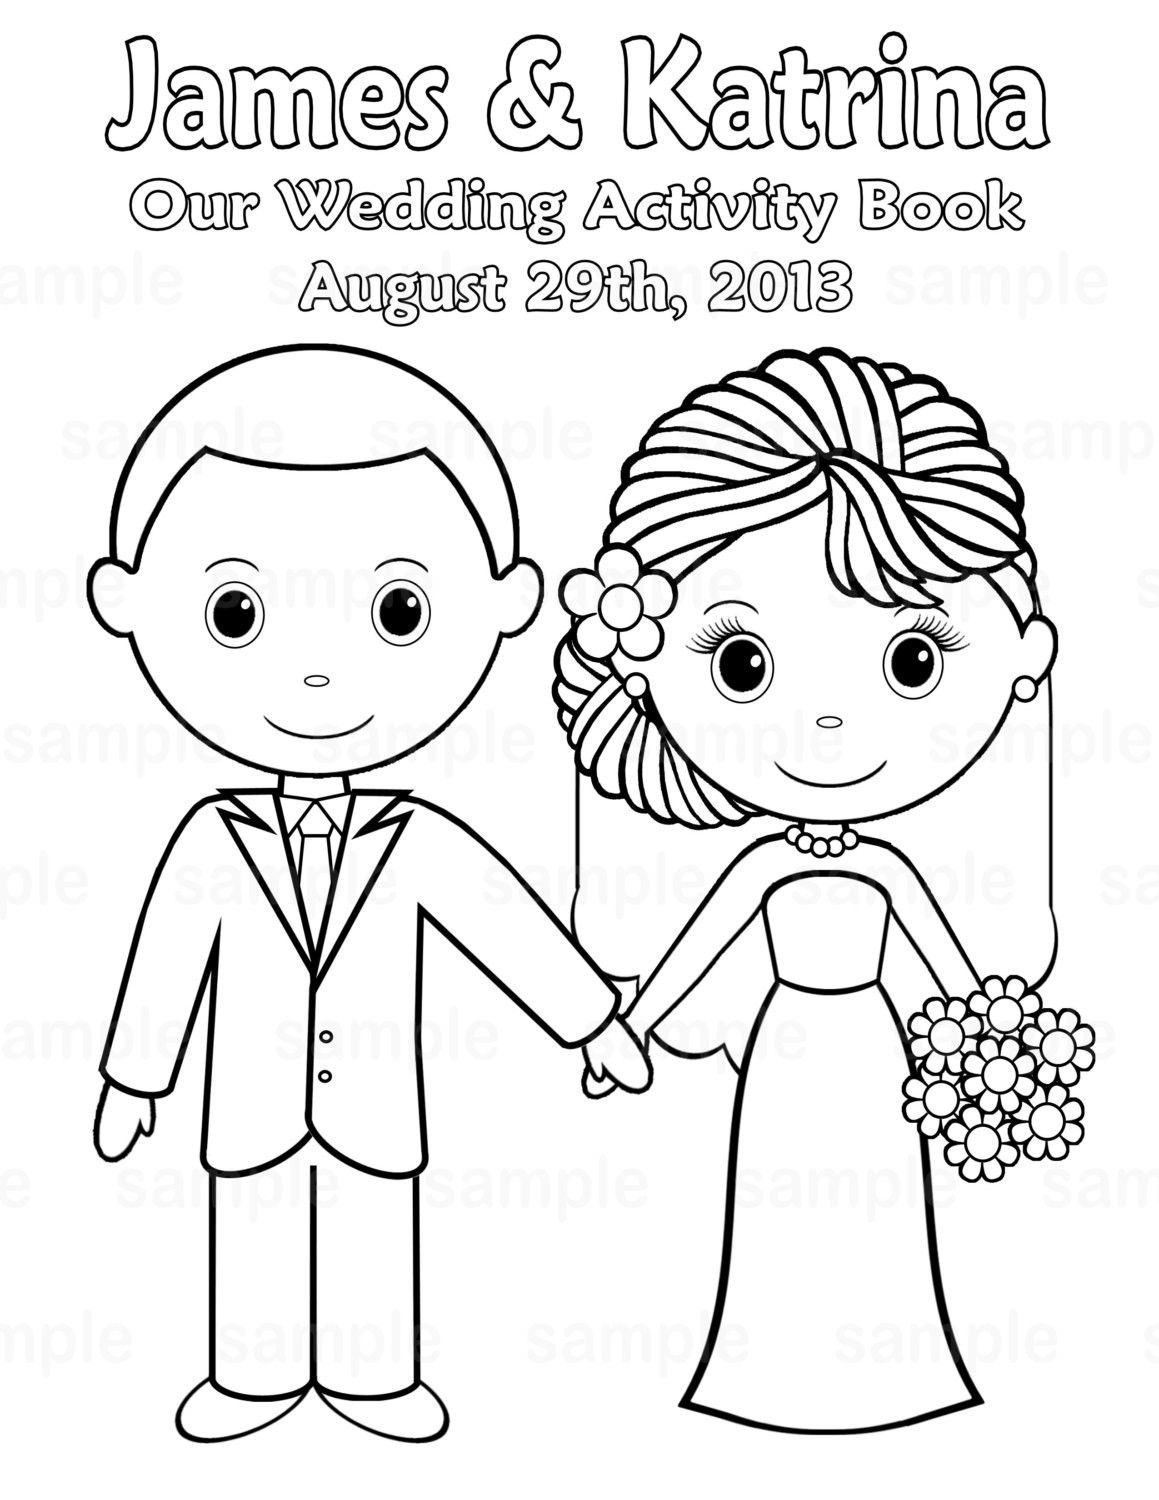 coloring pages wedding Free Printable Wedding Coloring Pages | Free Printable Wedding  coloring pages wedding